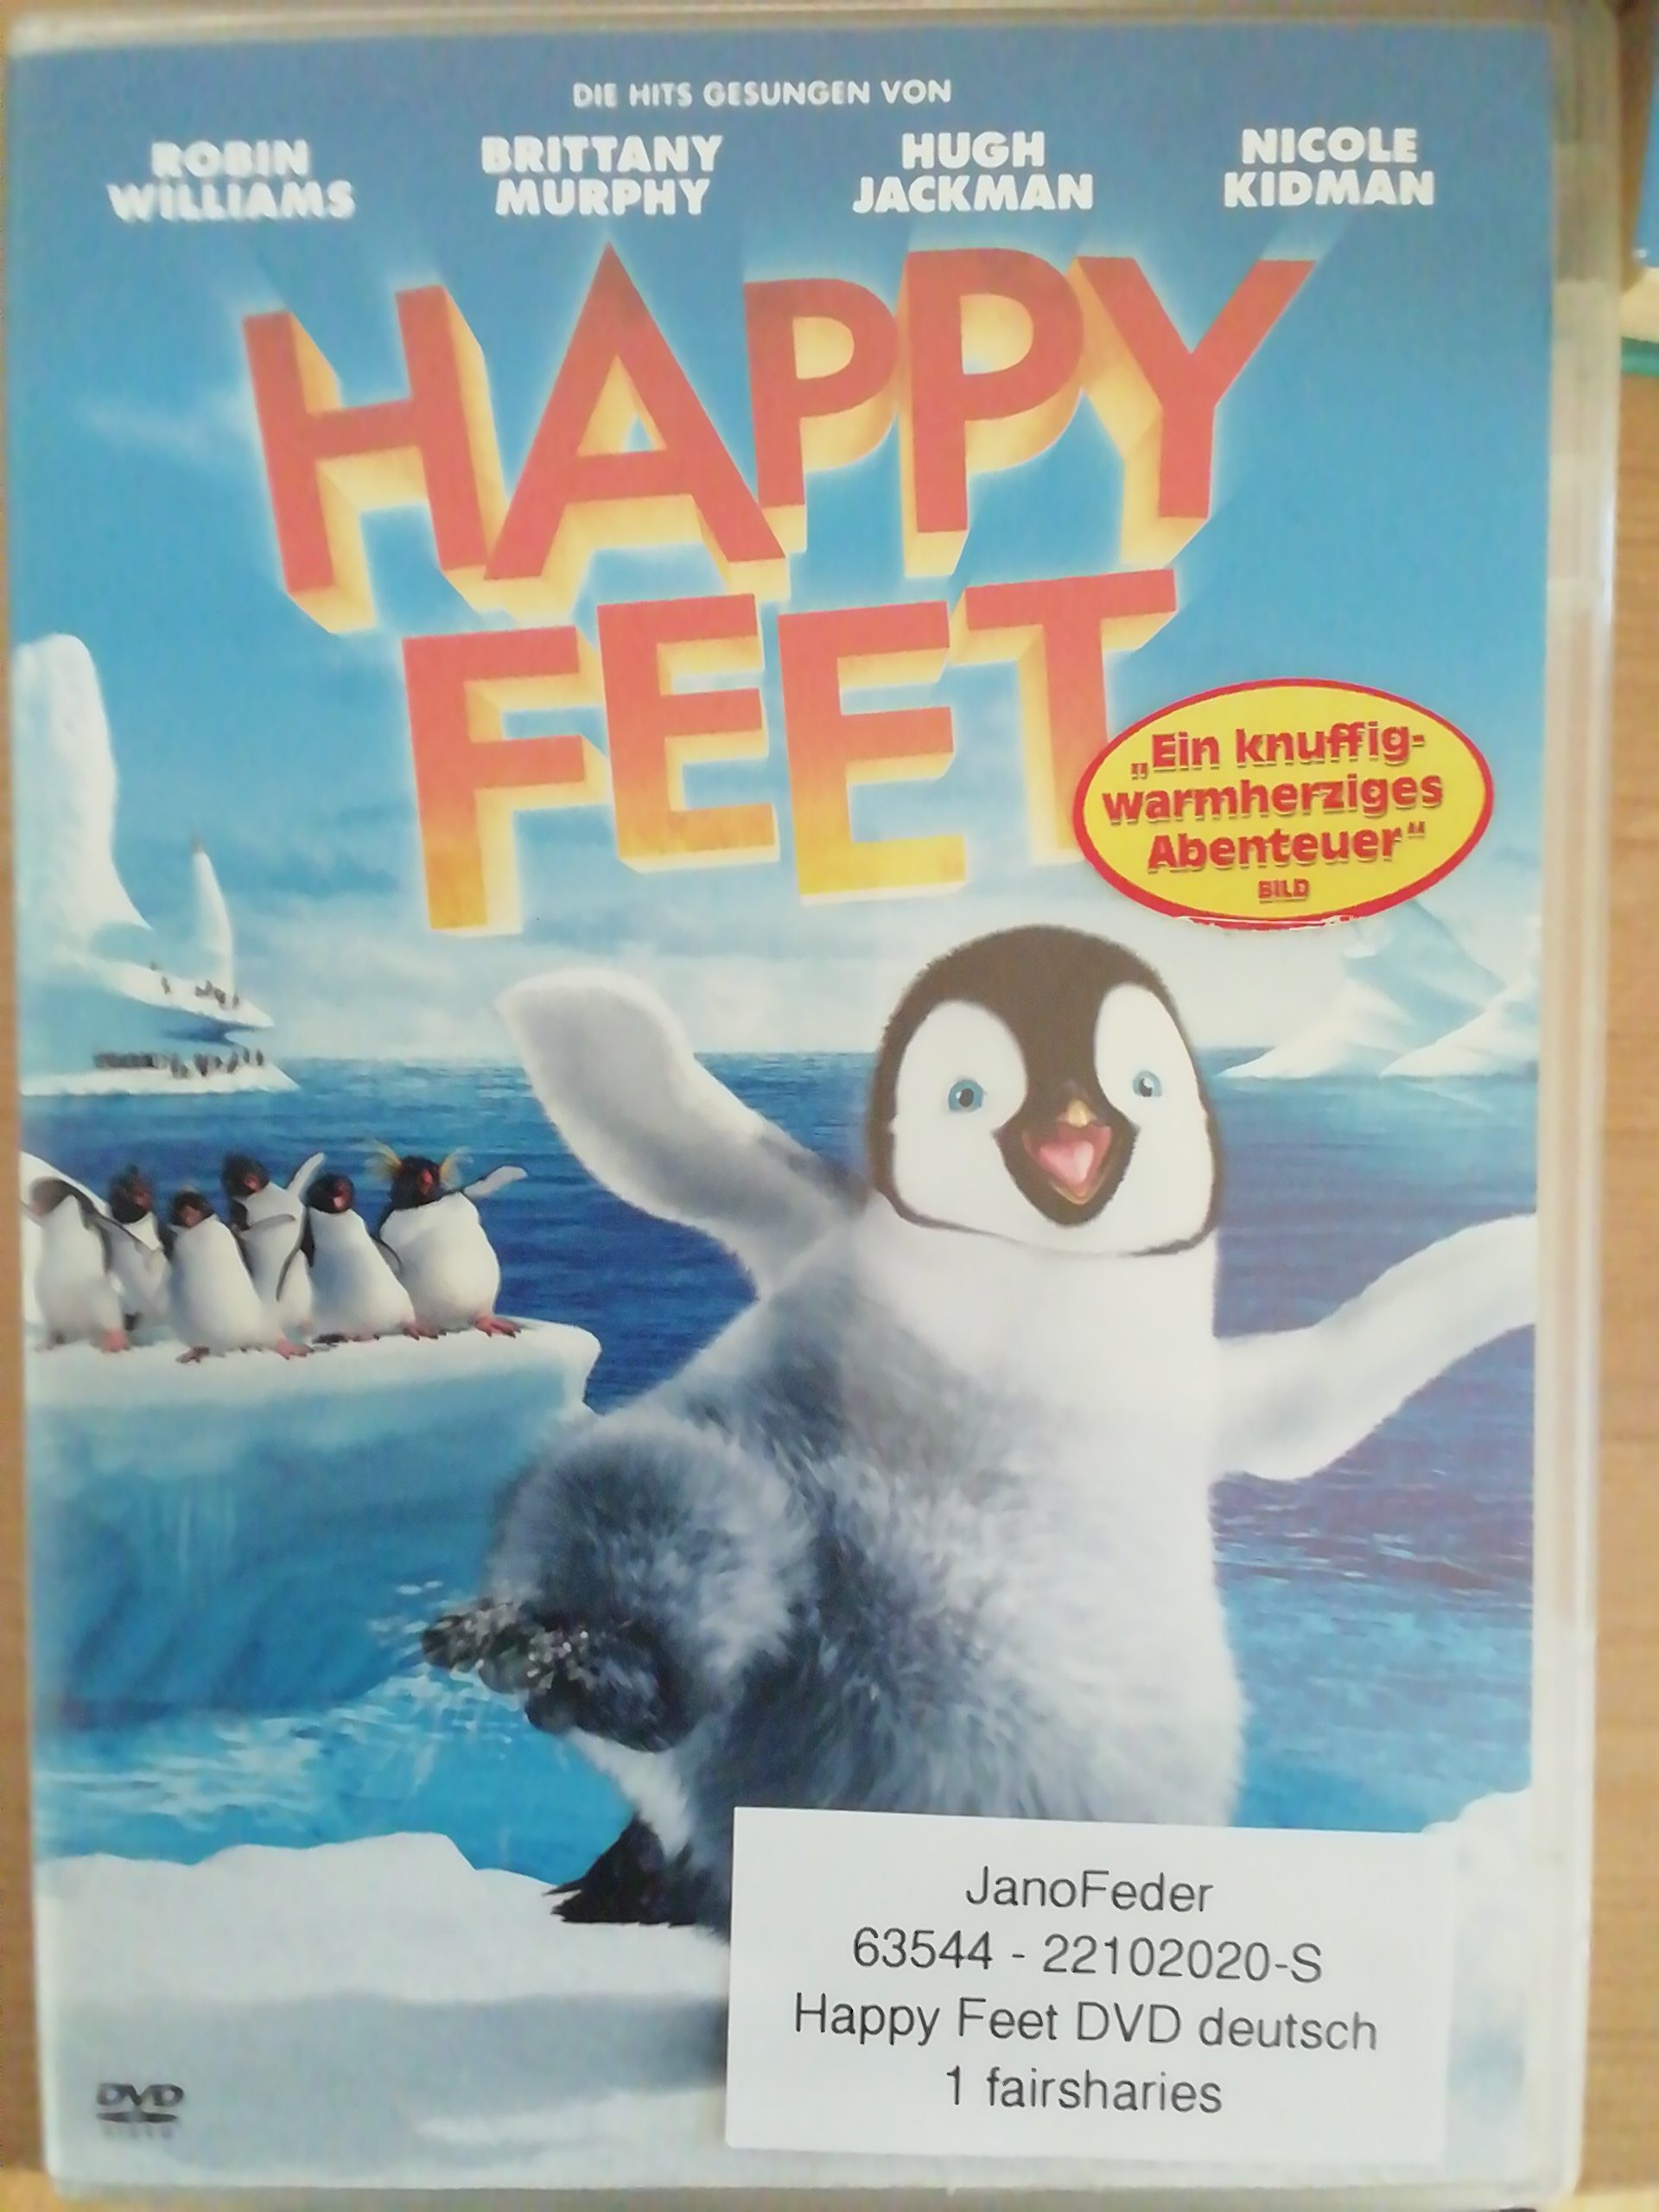 Happy Feet DVD deutsch tauschen